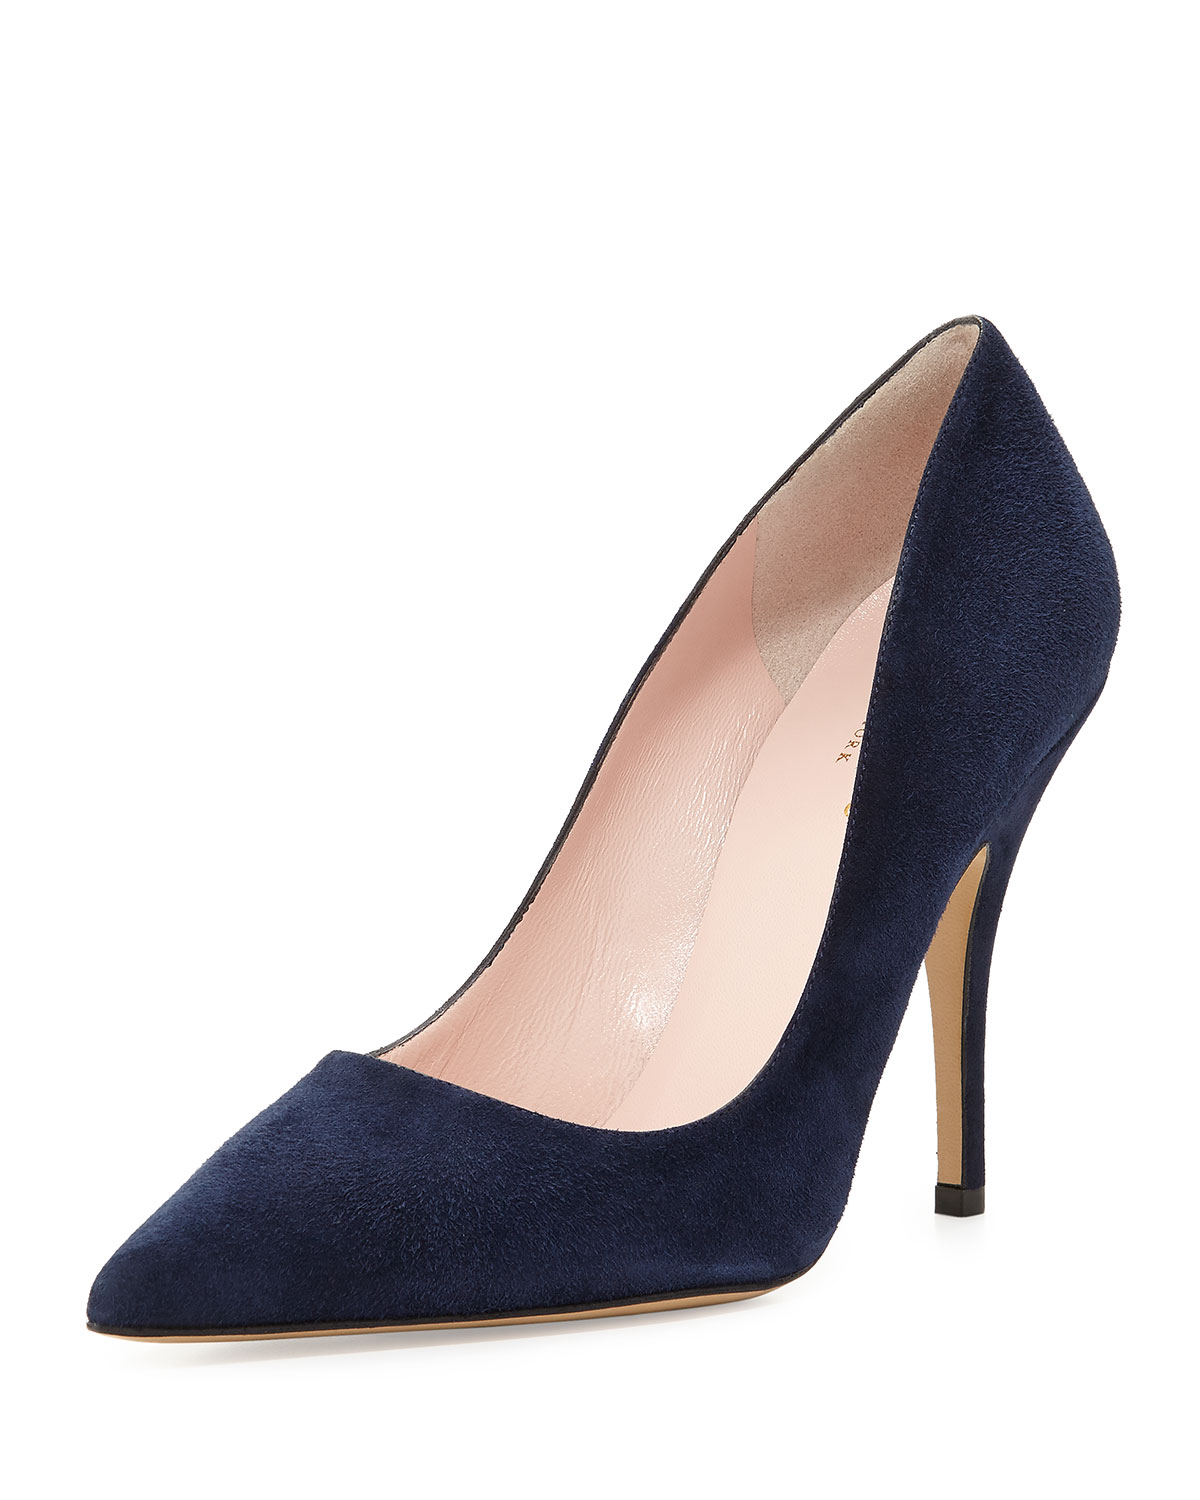 464204477a2a kate spade new york licorice suede pointed-toe pump